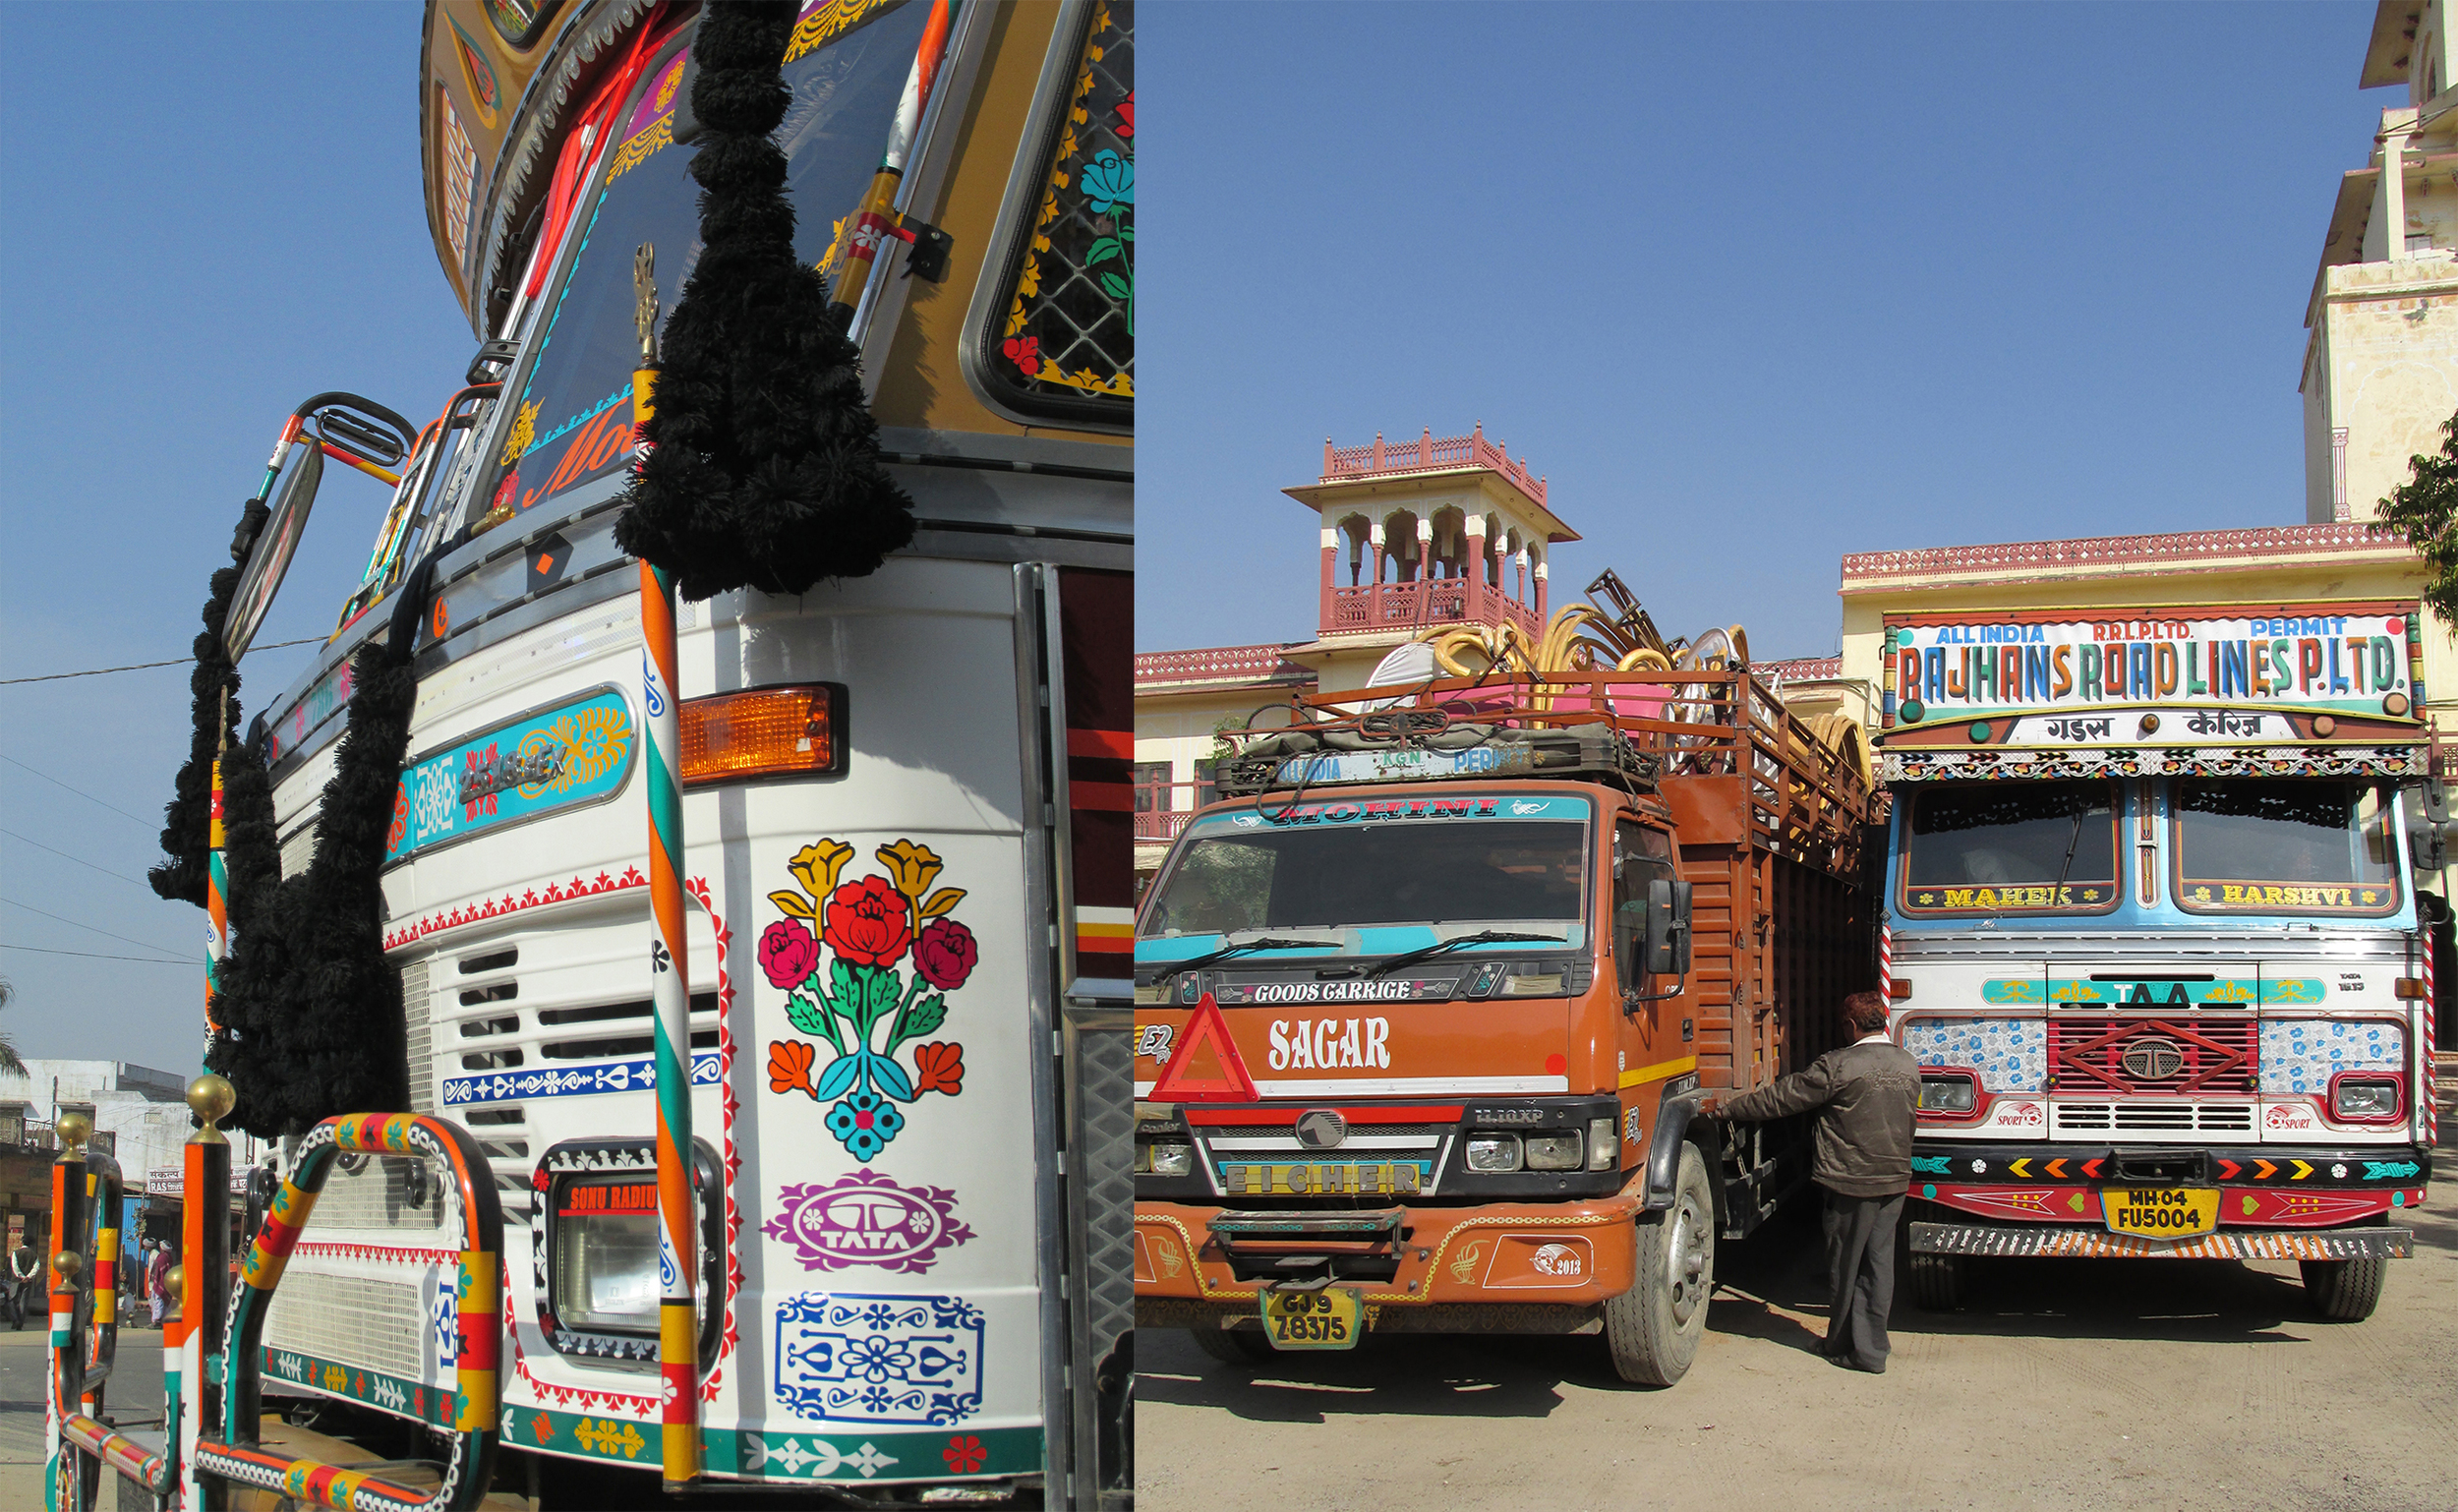 All trucks are very loud - in color and in sounds. Horns and beeping are welcomed